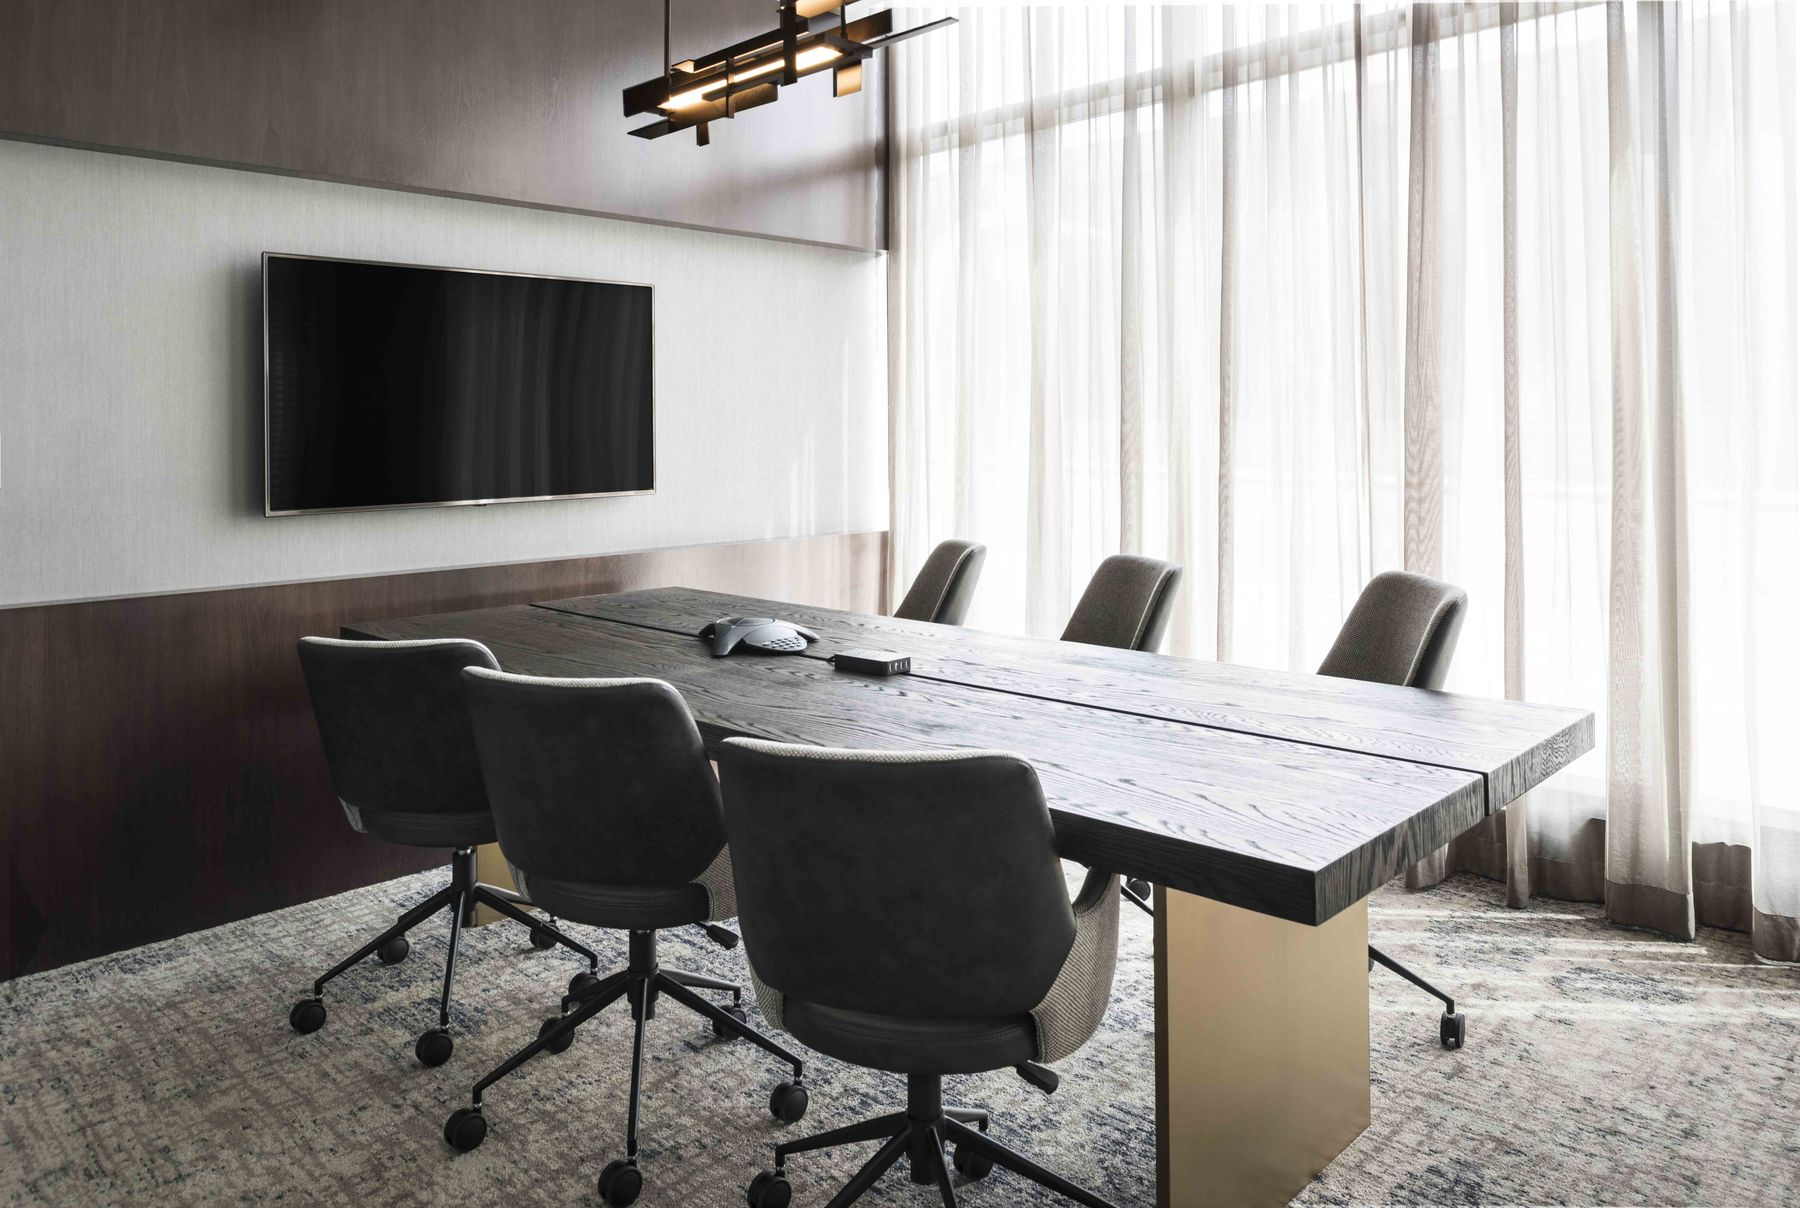 Conference table with chairs and wall mounted TV